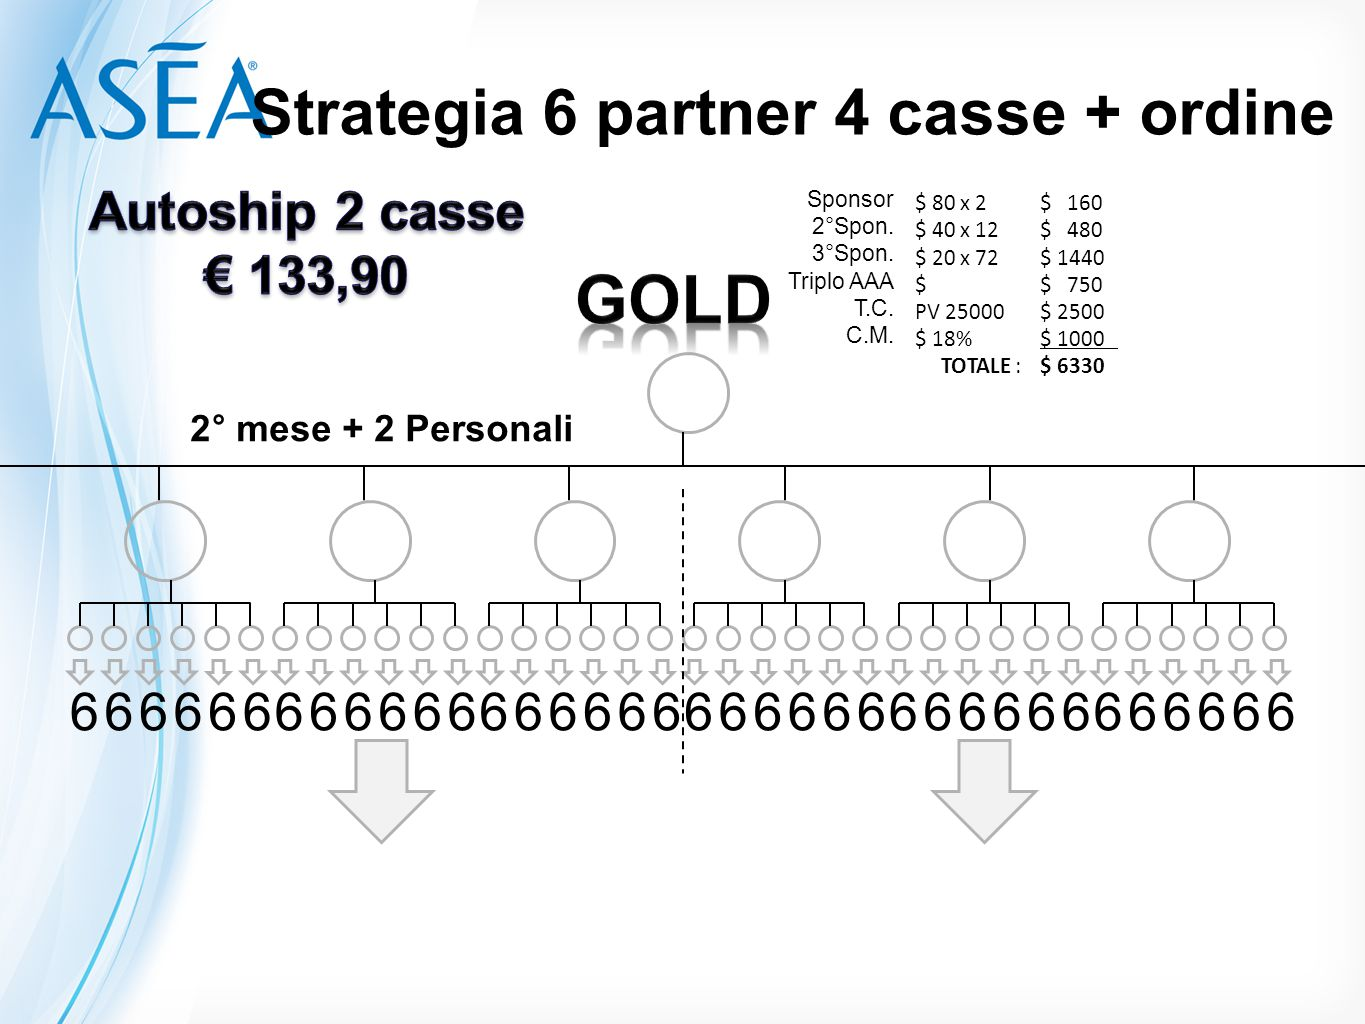 Strategia 6 partner 4 casse + ordine